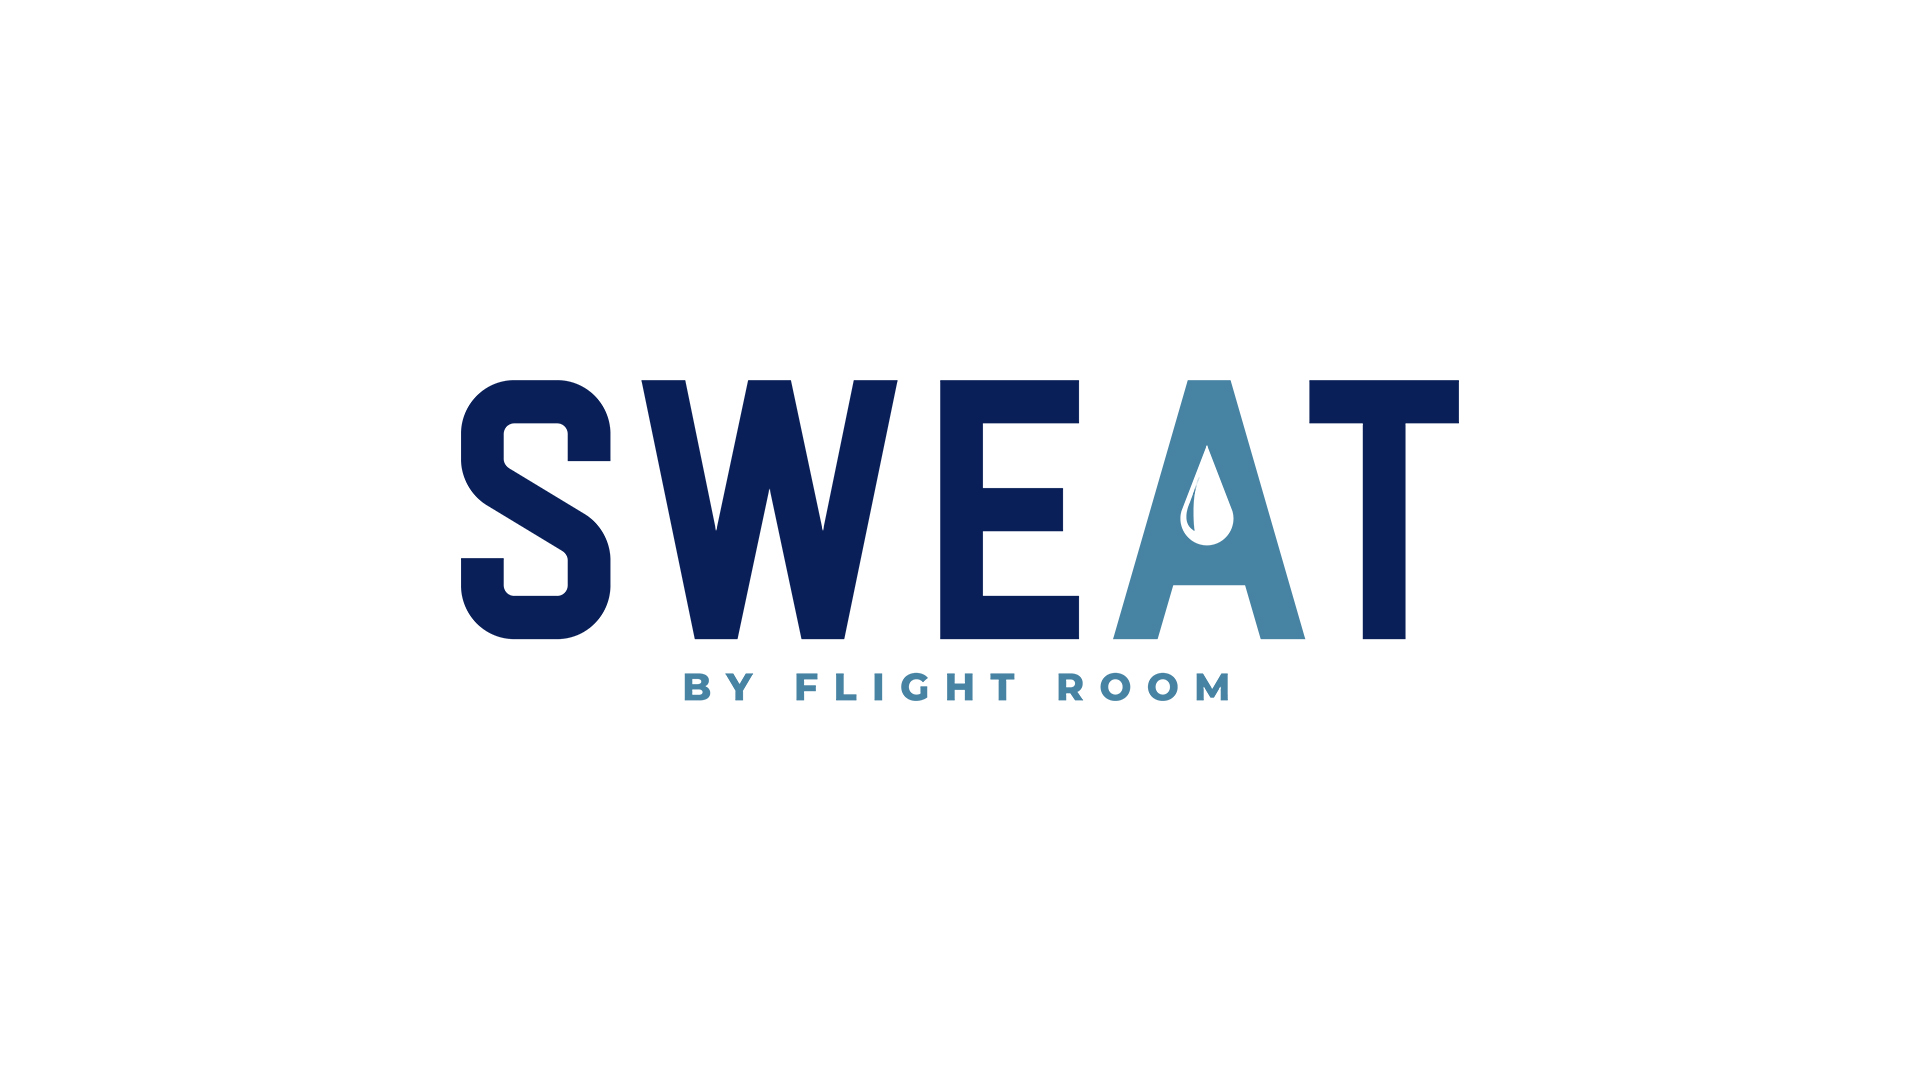 """SWEAT - SWEAT by Flight Room is a boutique cycle studio that features high intensity cardio workouts led by world class trainers. SWEAT was born out of owner and operator, Jamar Clarke's, passion for fitness. The drop of sweat element in the """"A"""", gives this logo an easy identifier."""